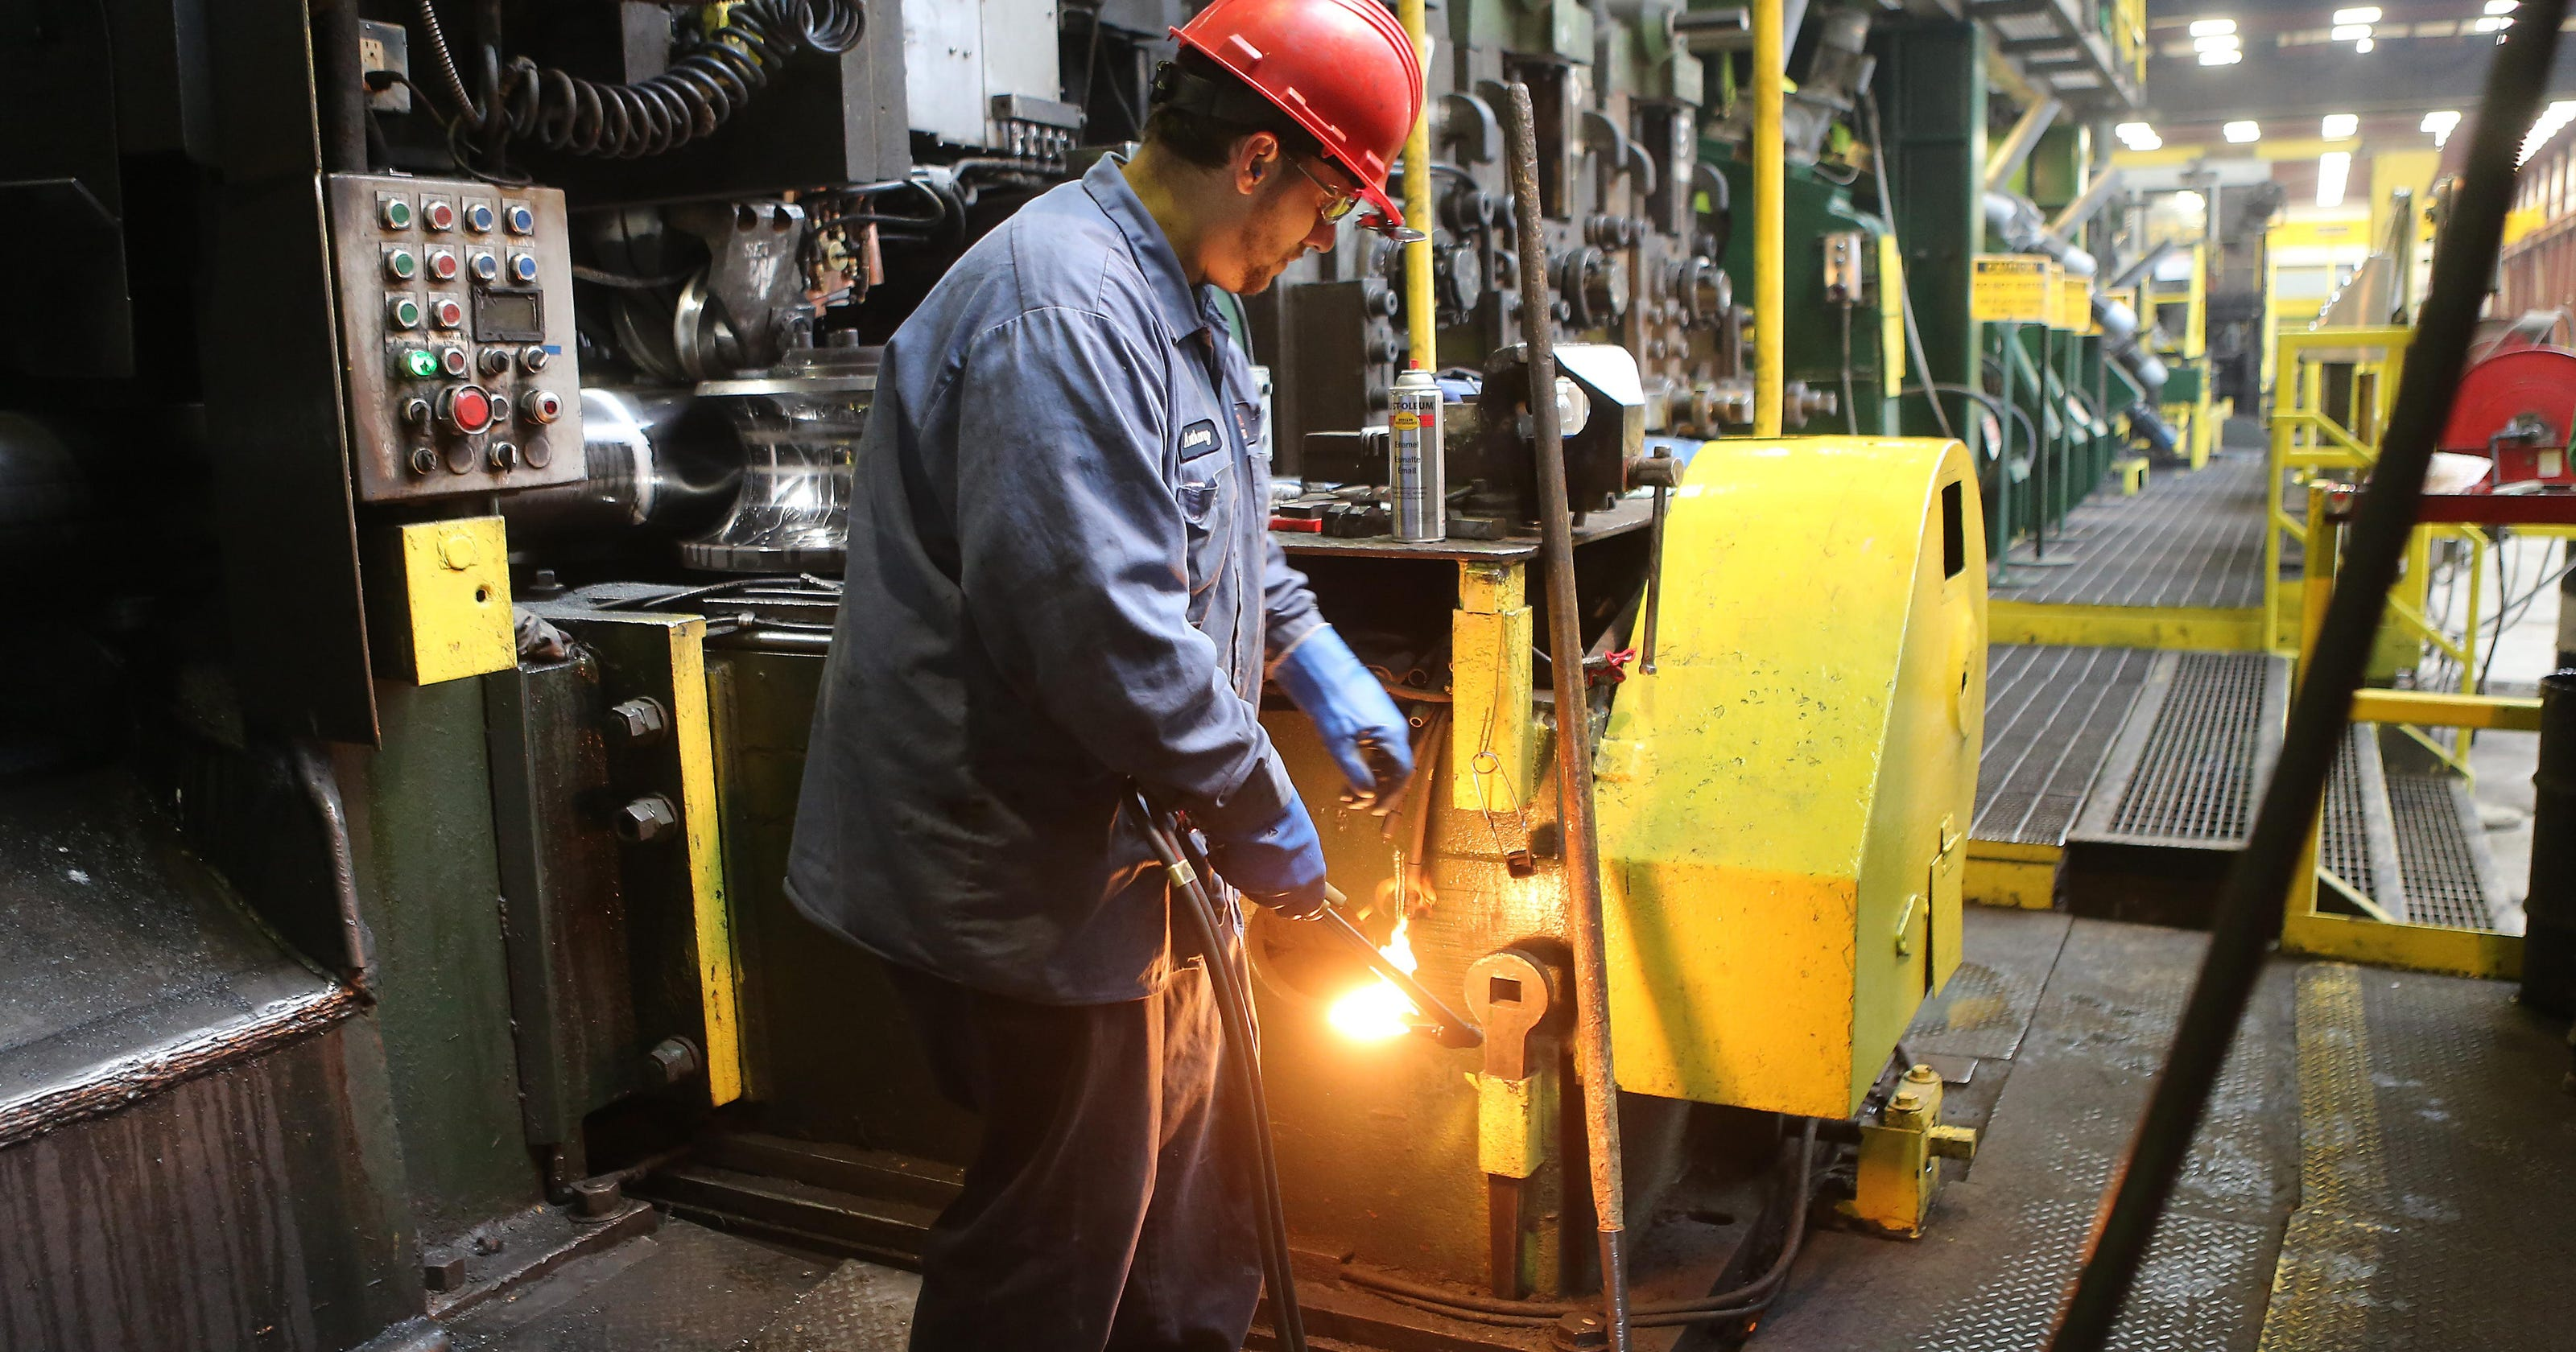 NKY steel mill sheds more workers in latest round of layoffs